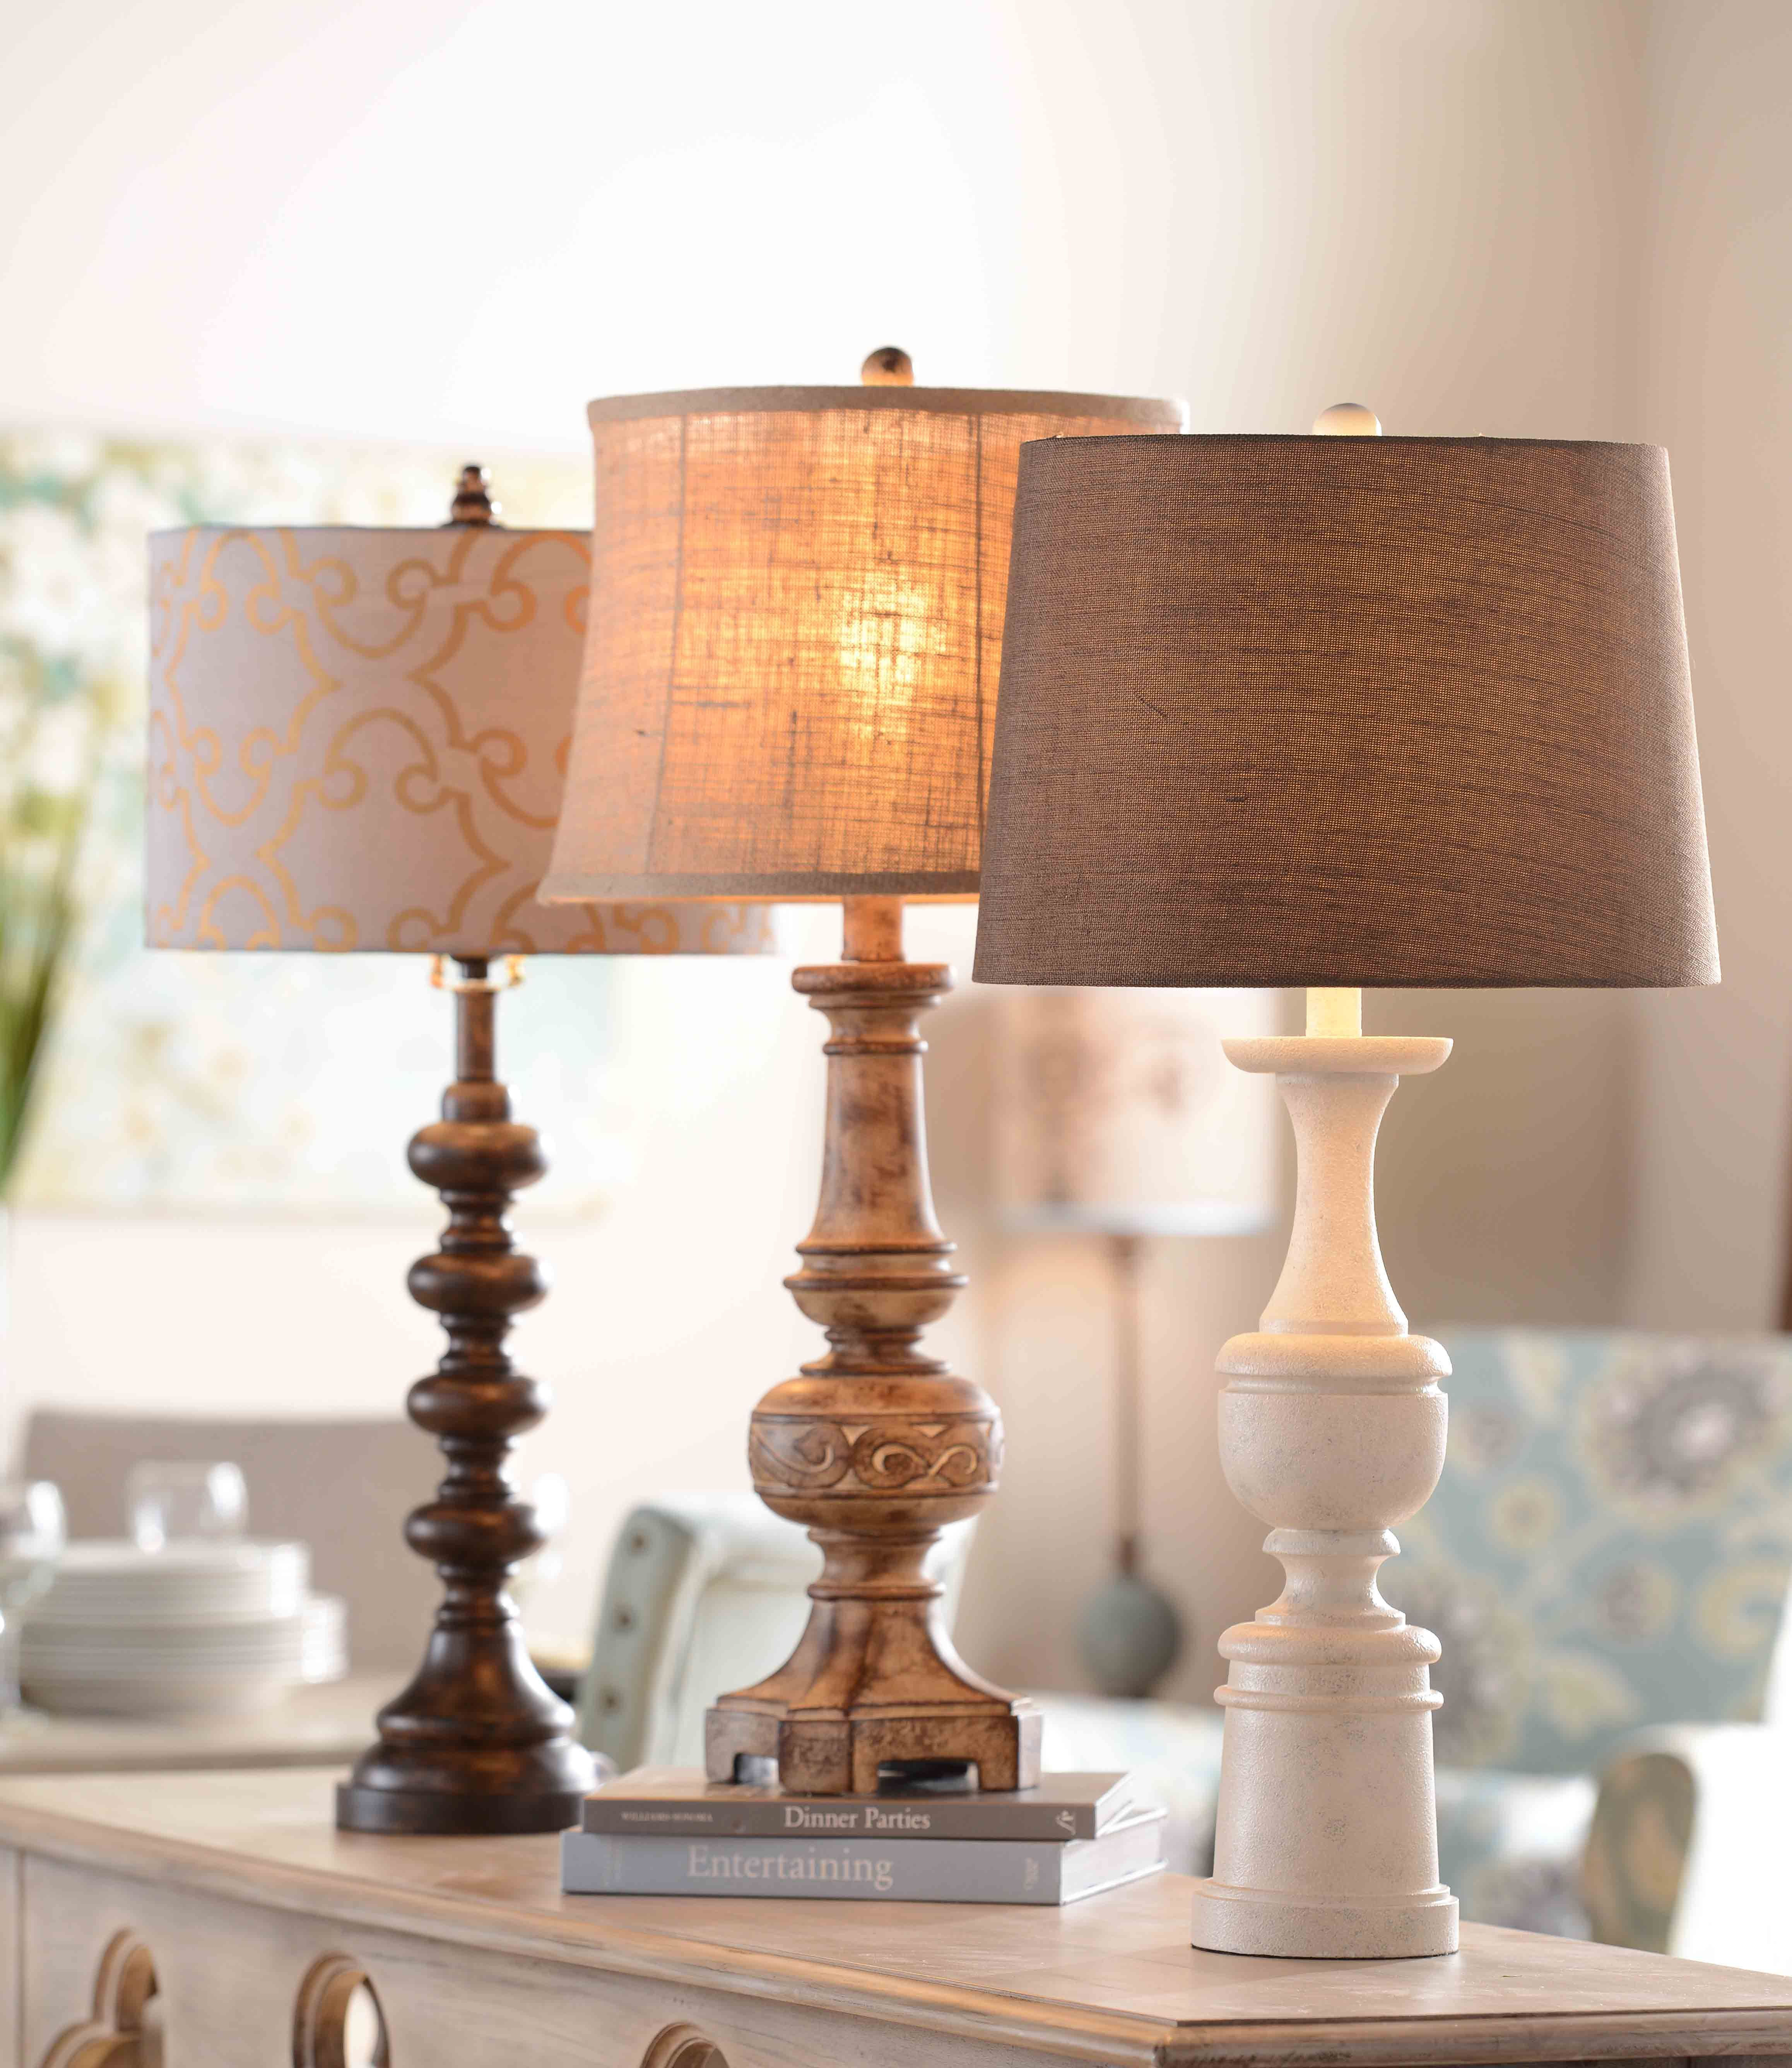 Eclectic With A Touch Of Elegance Kirklands Eclecticelegance Tablelamps Home Farm House Living Room Modern Farmhouse Decor #touch #living #room #lamps